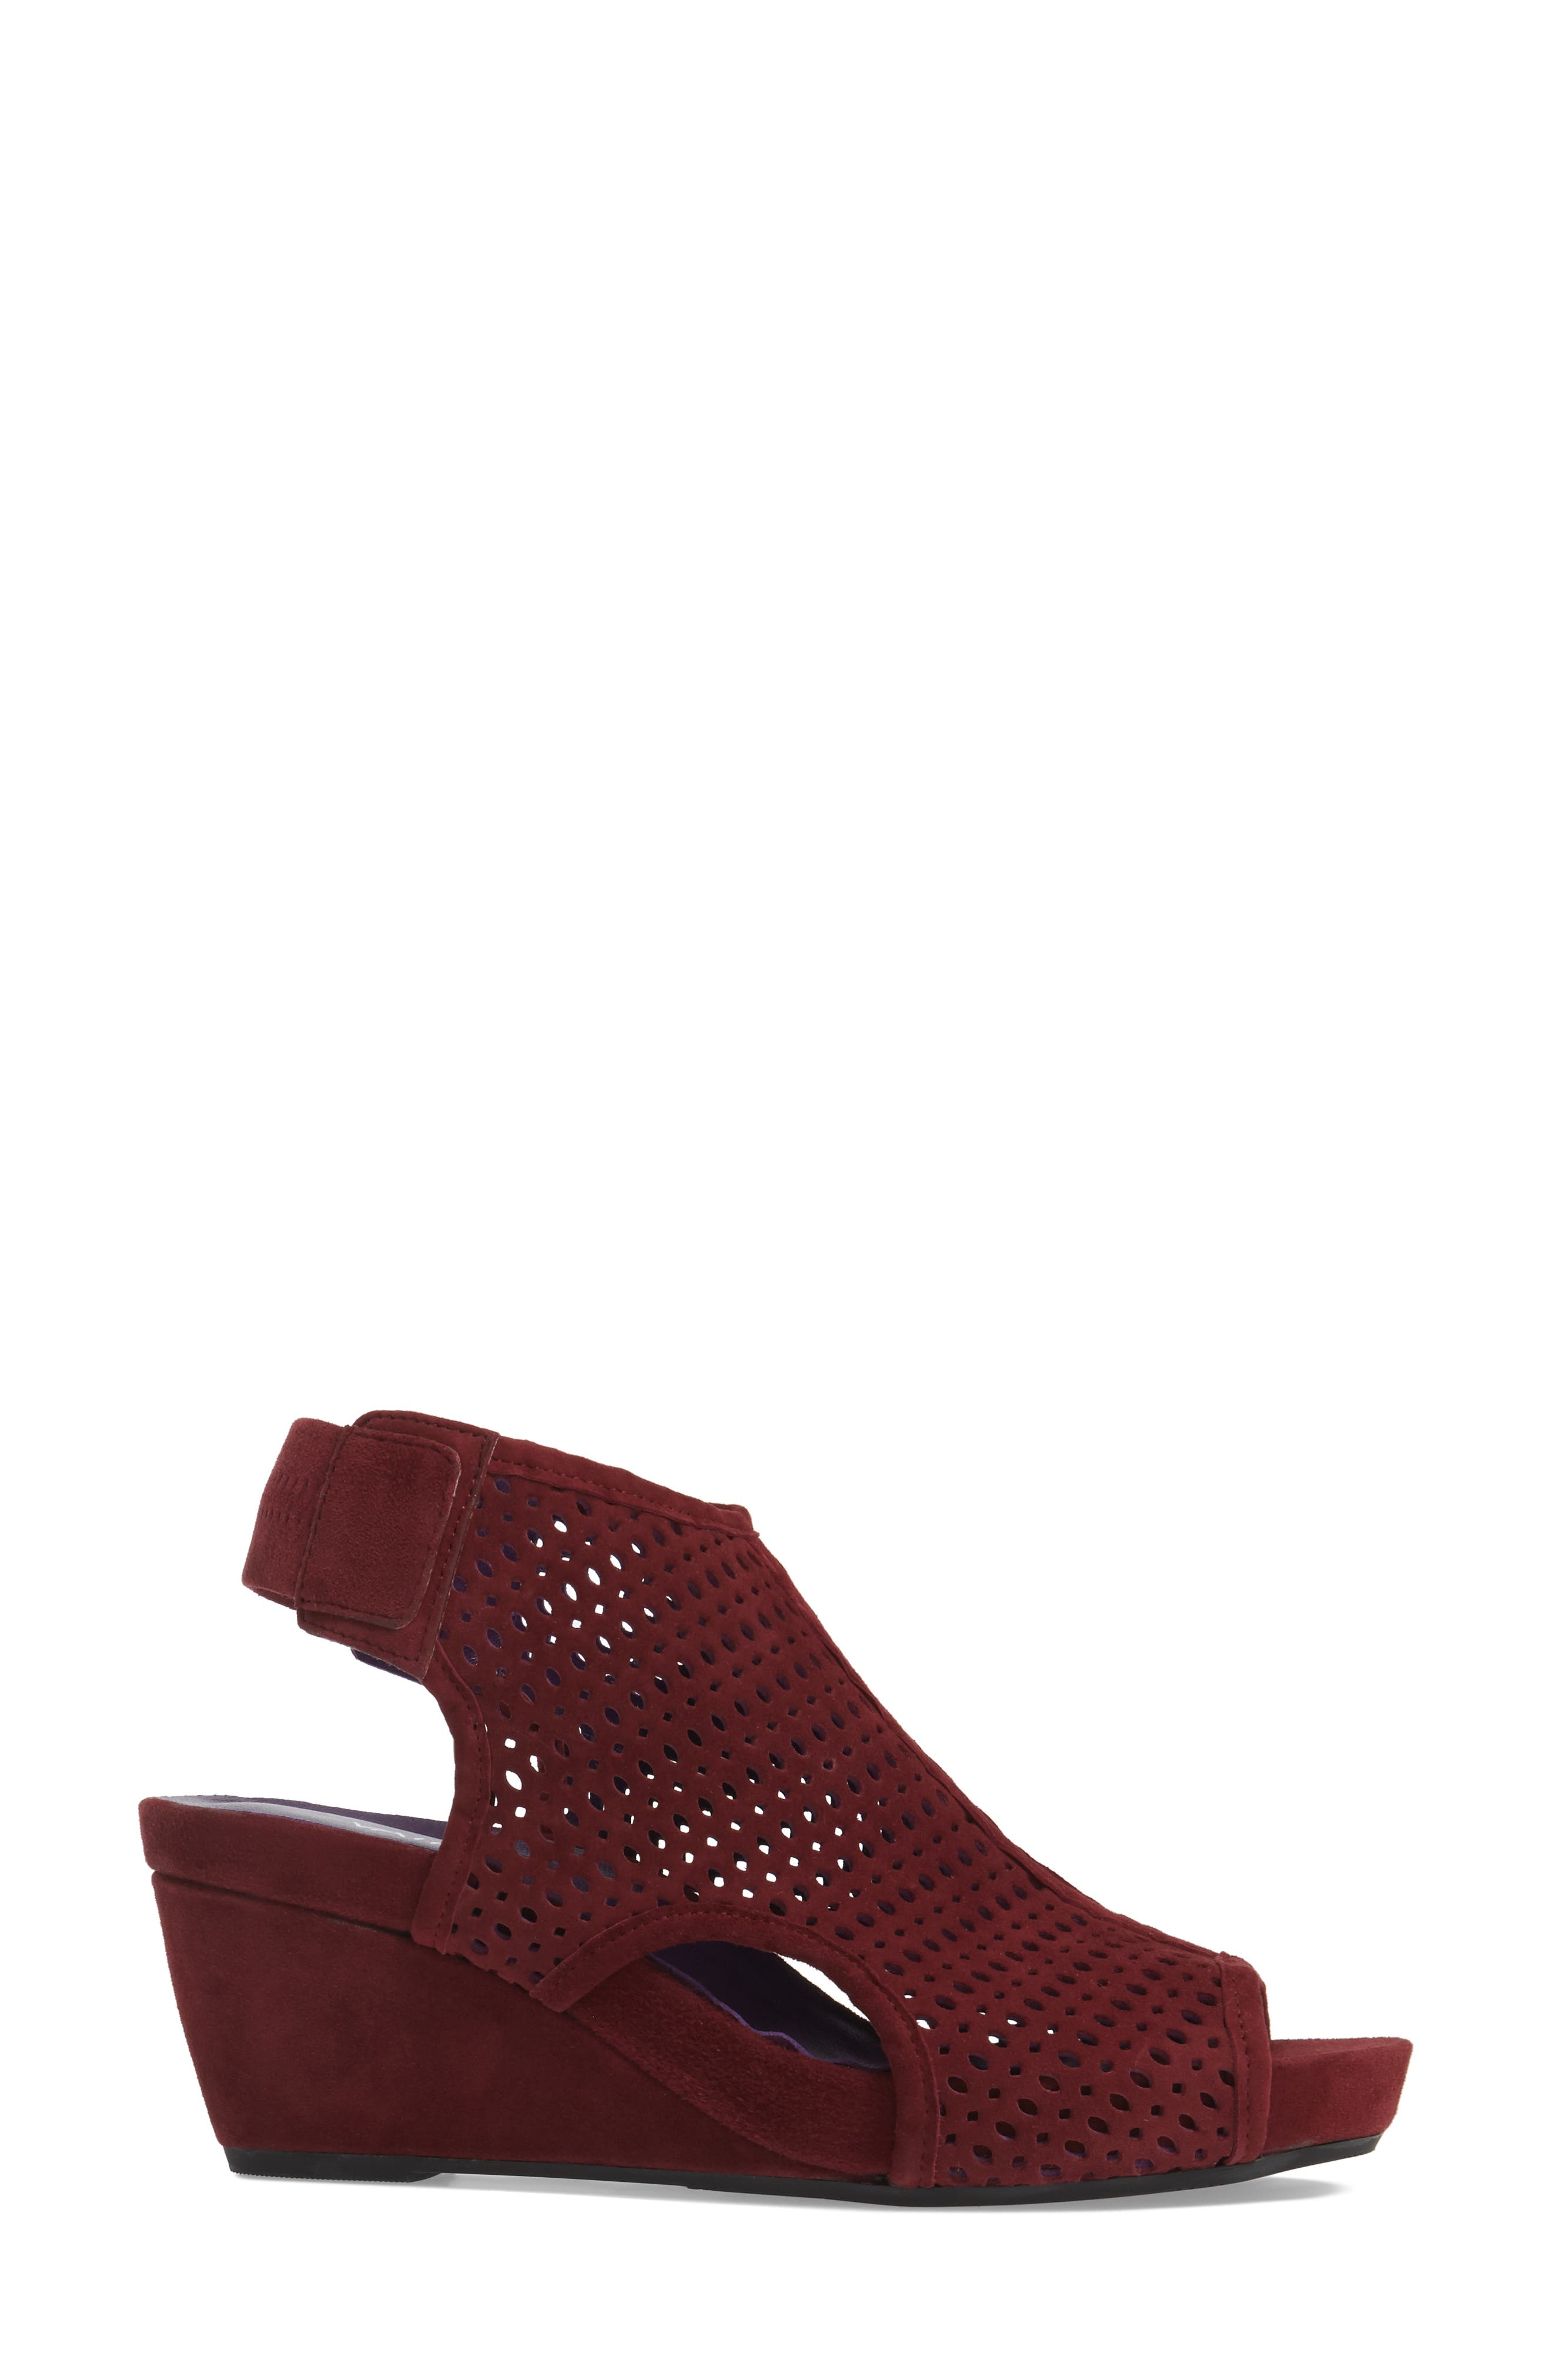 'Inez' Wedge Sandal,                             Alternate thumbnail 3, color,                             Red Suede